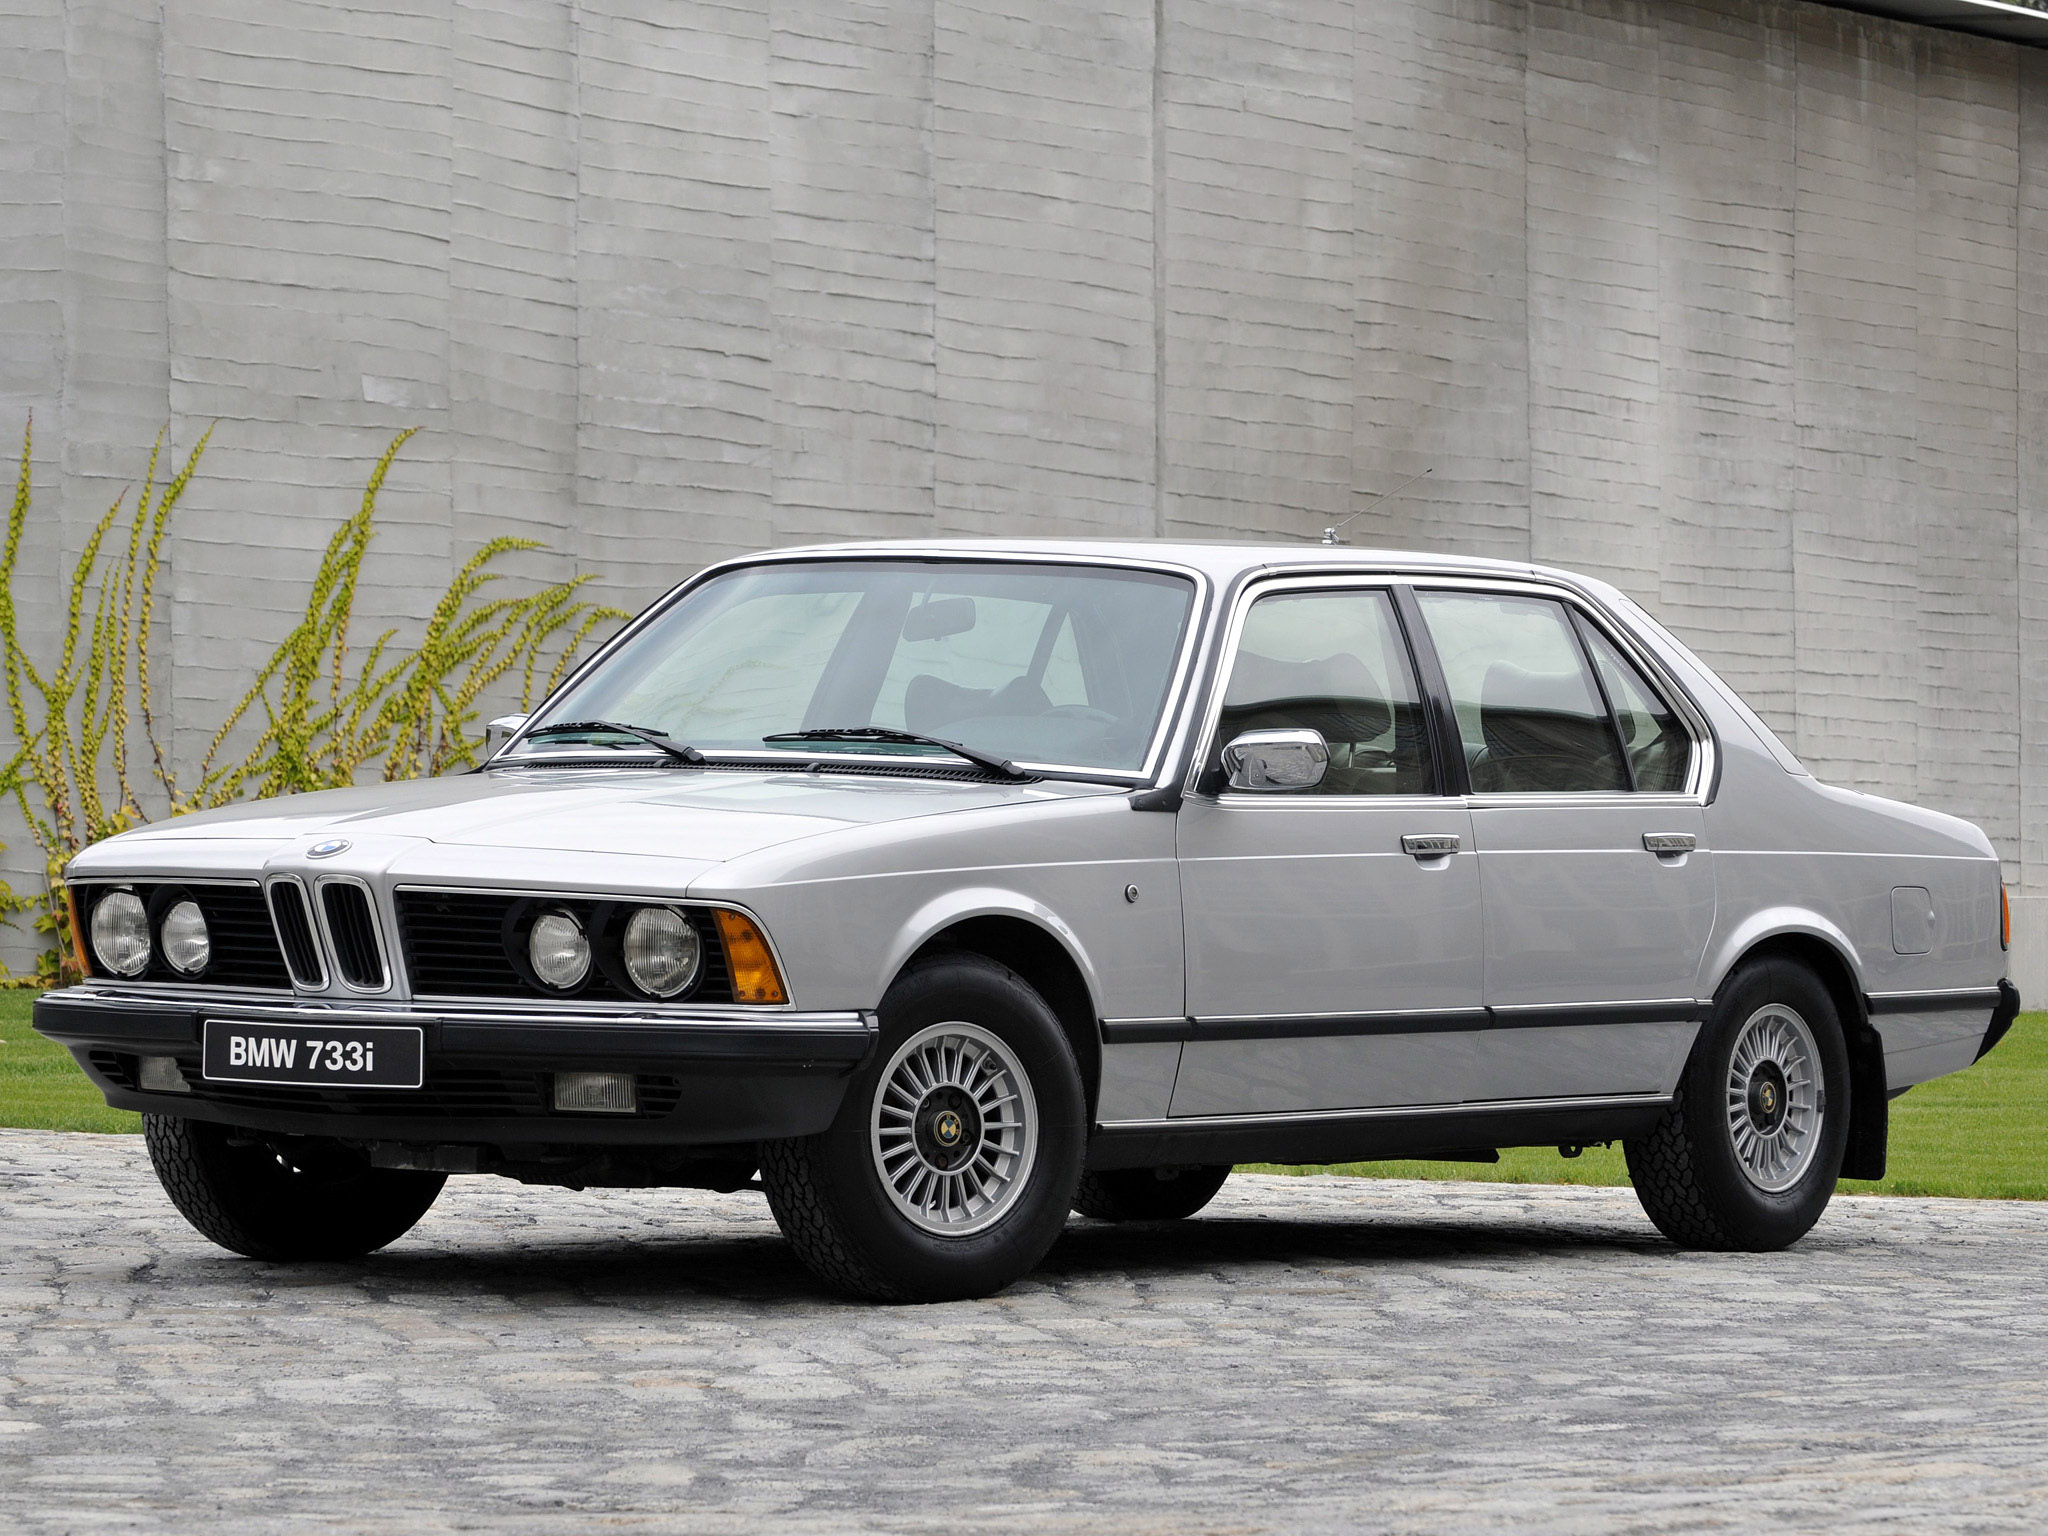 BMW 7 series 733i 1977 photo - 1